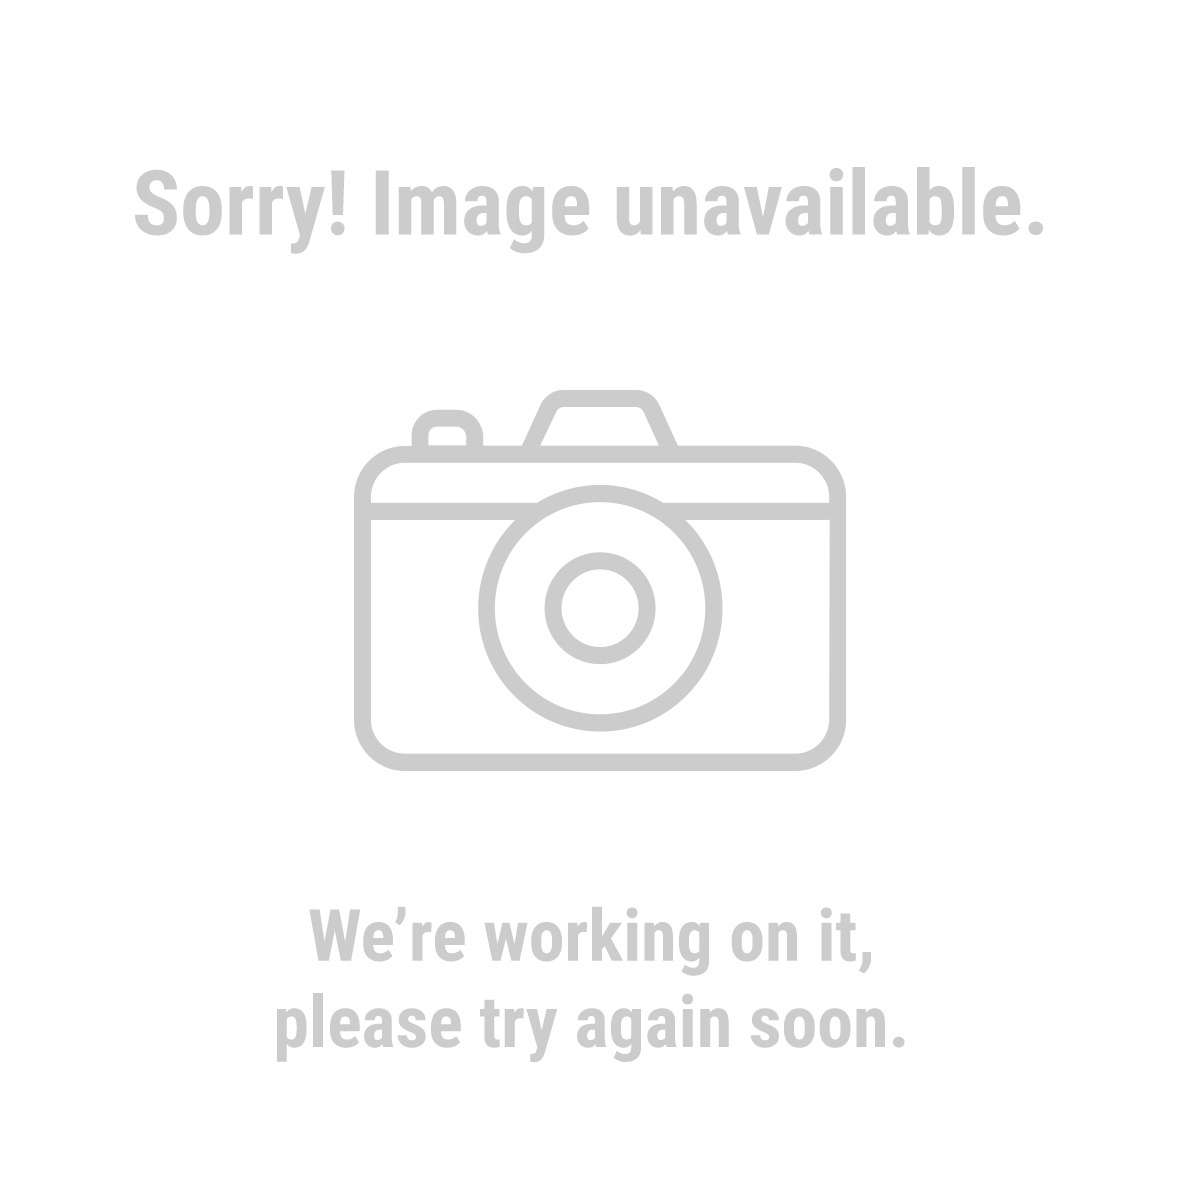 HARDY 95545 1/2 Finger Antivibration Gloves - X-Large